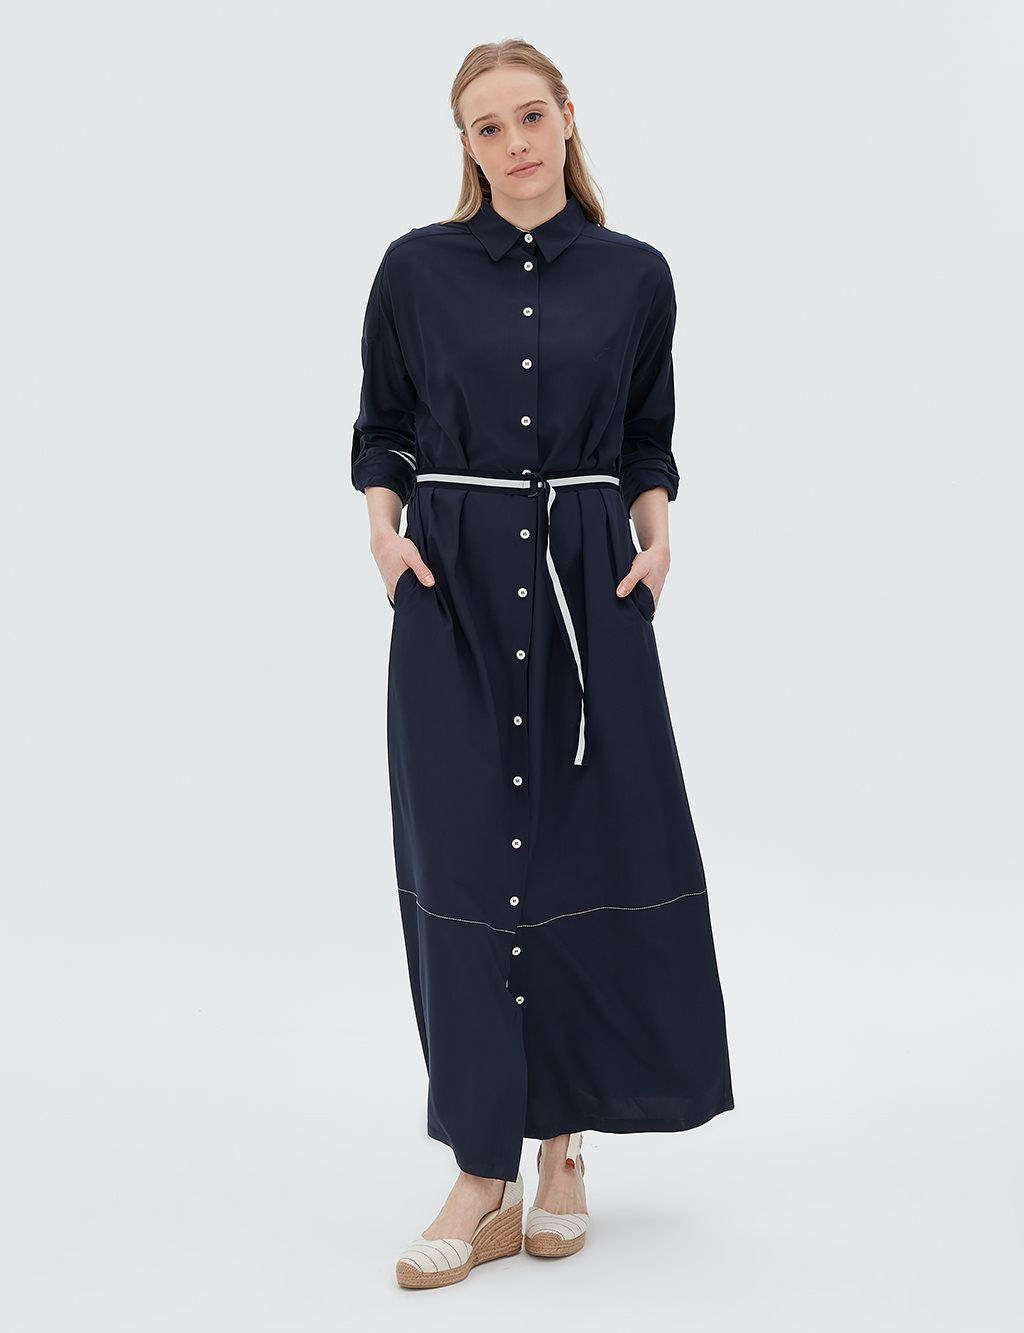 Detailed Dress With Belt B20 23027 Navy